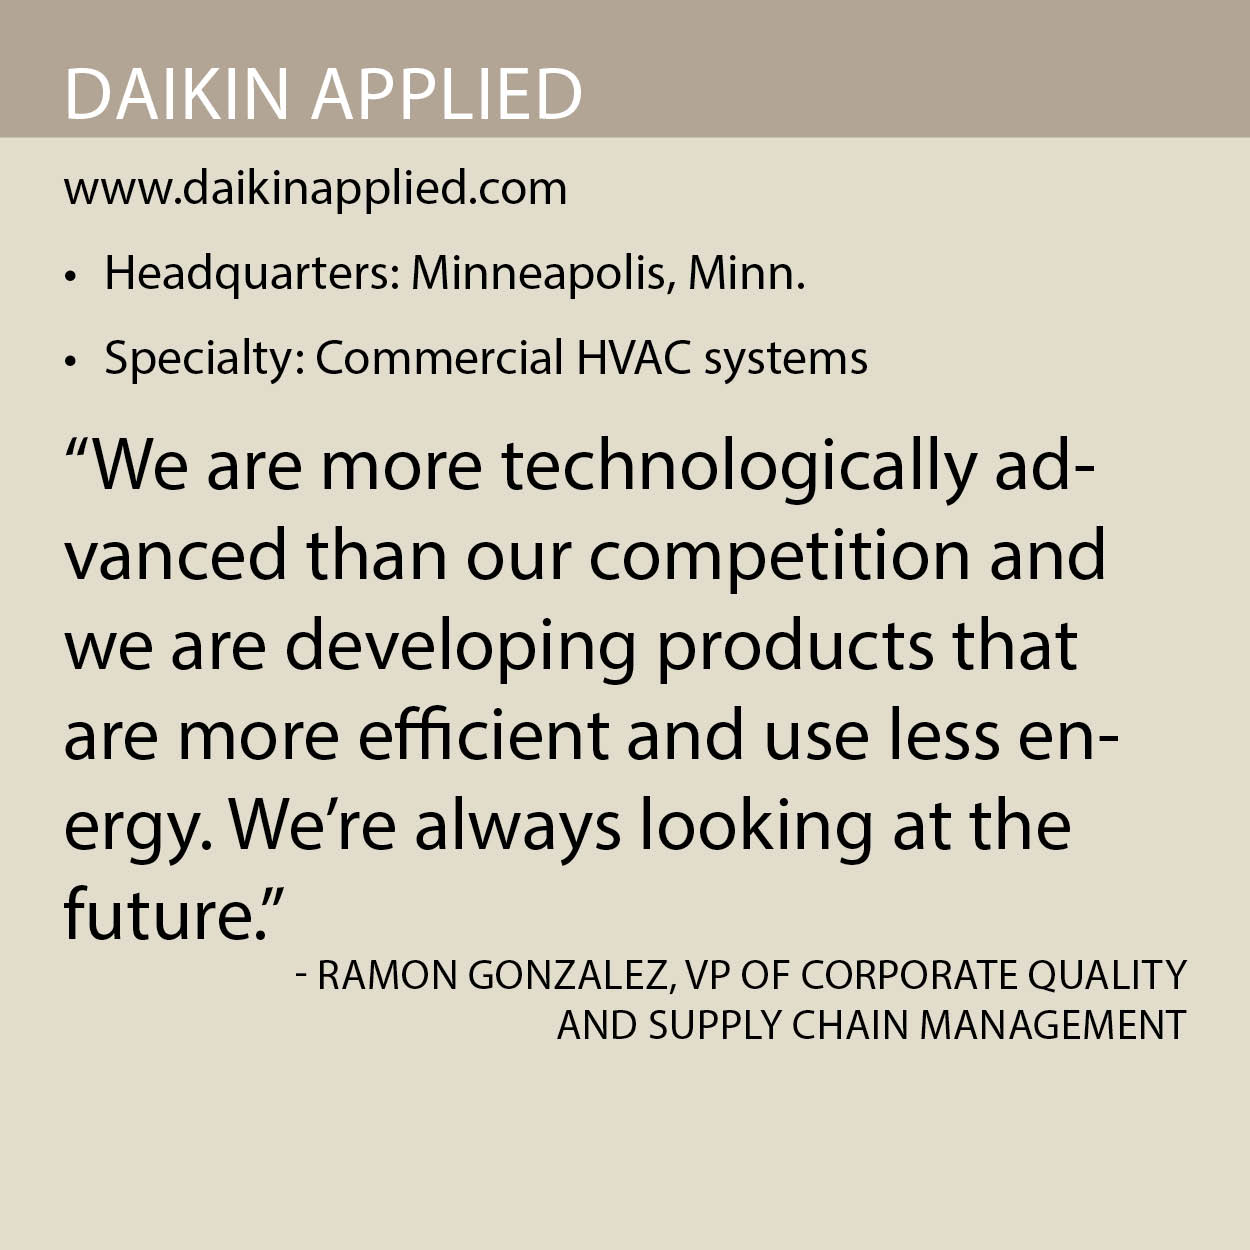 Daikin Applied fact box